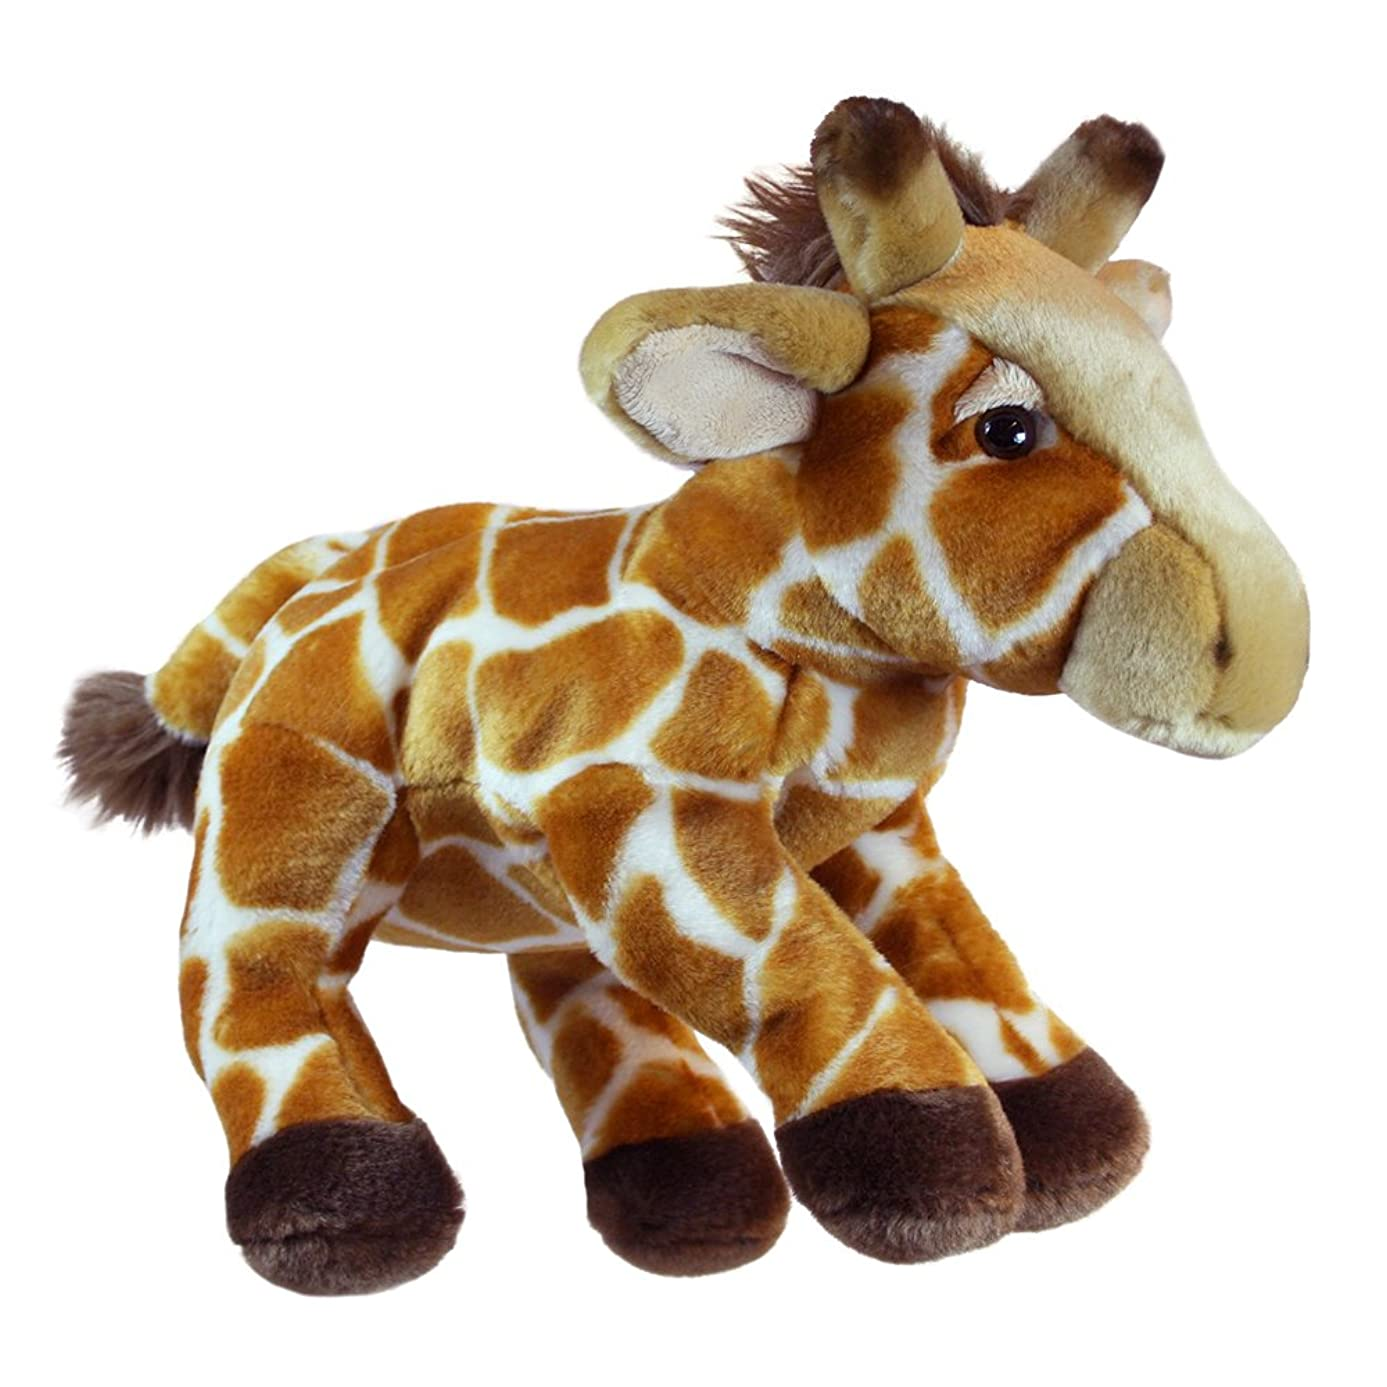 The Puppet Company Full-Bodied Animal  Hand Puppets Giraffe